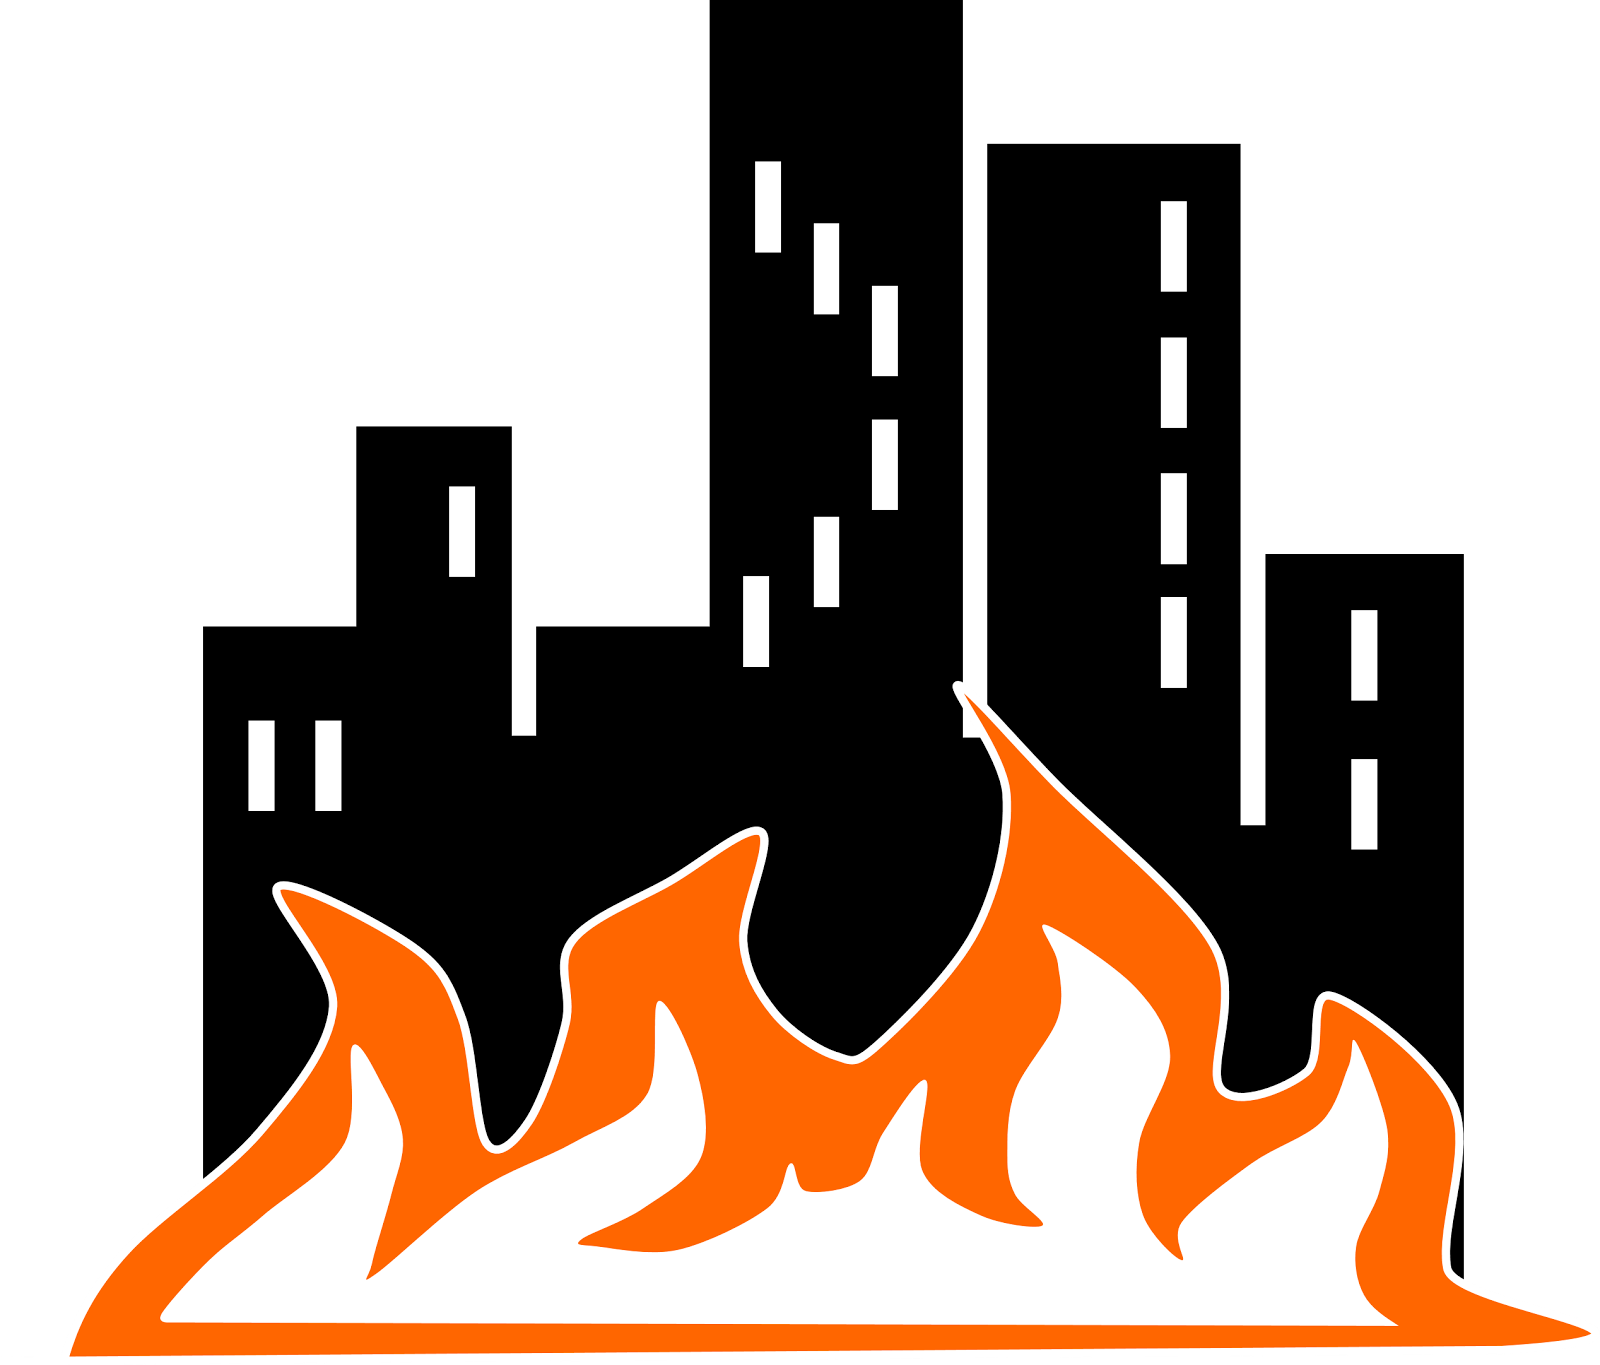 Disaster Clipart Png.